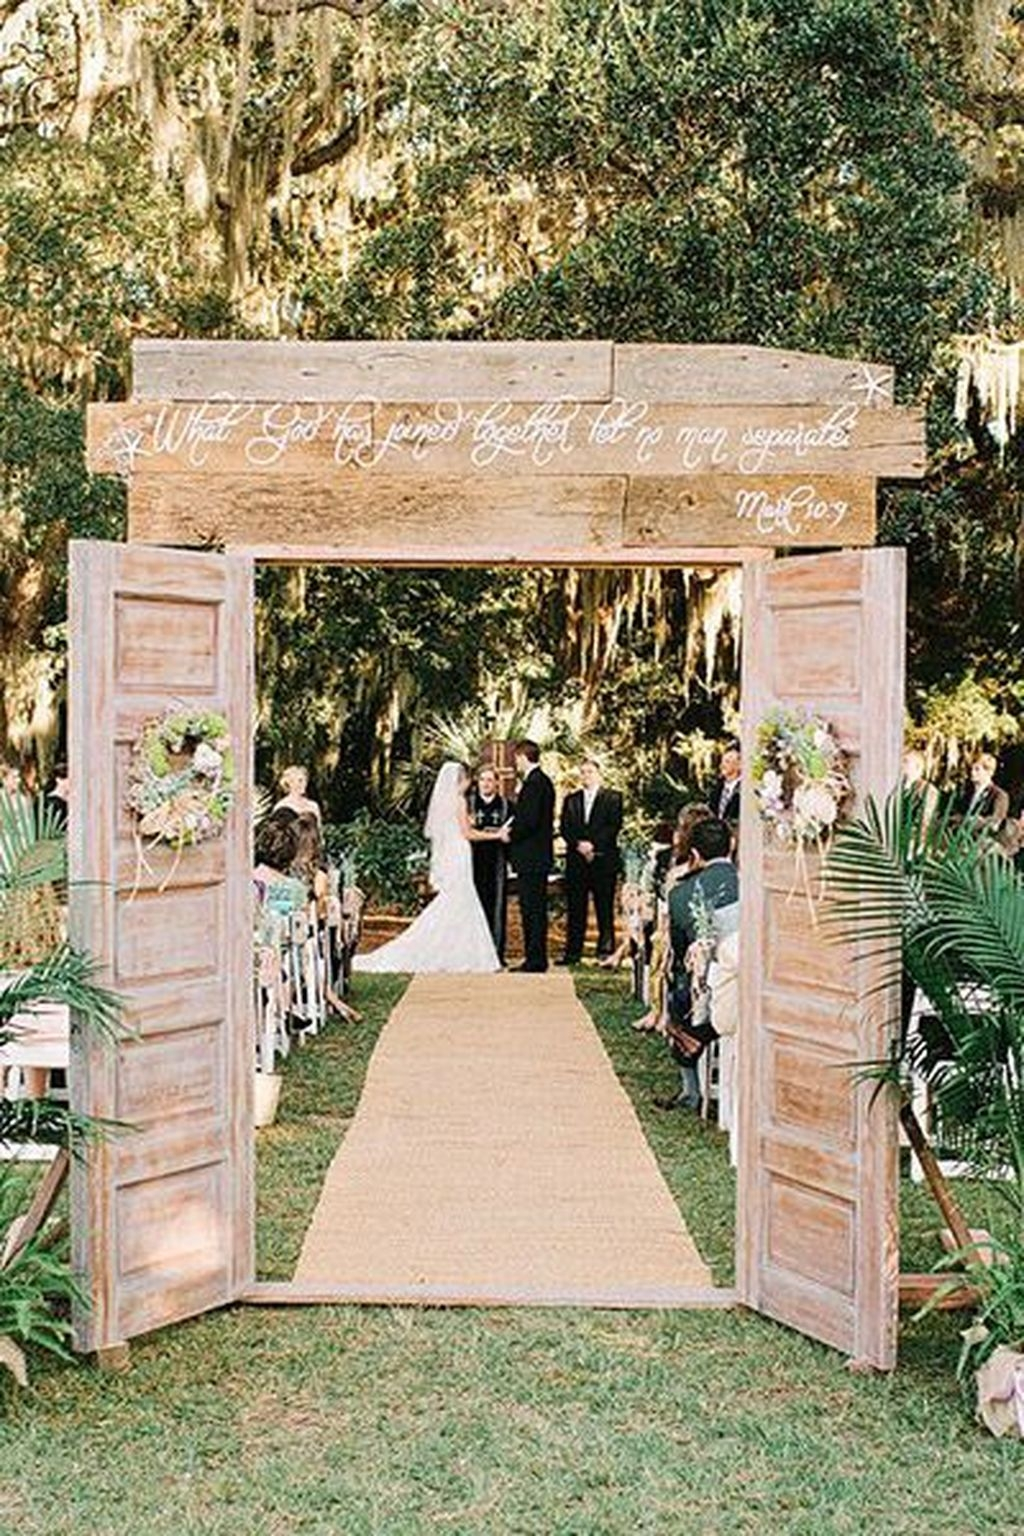 Hottest Wedding Decorations Ideas On A Budget08